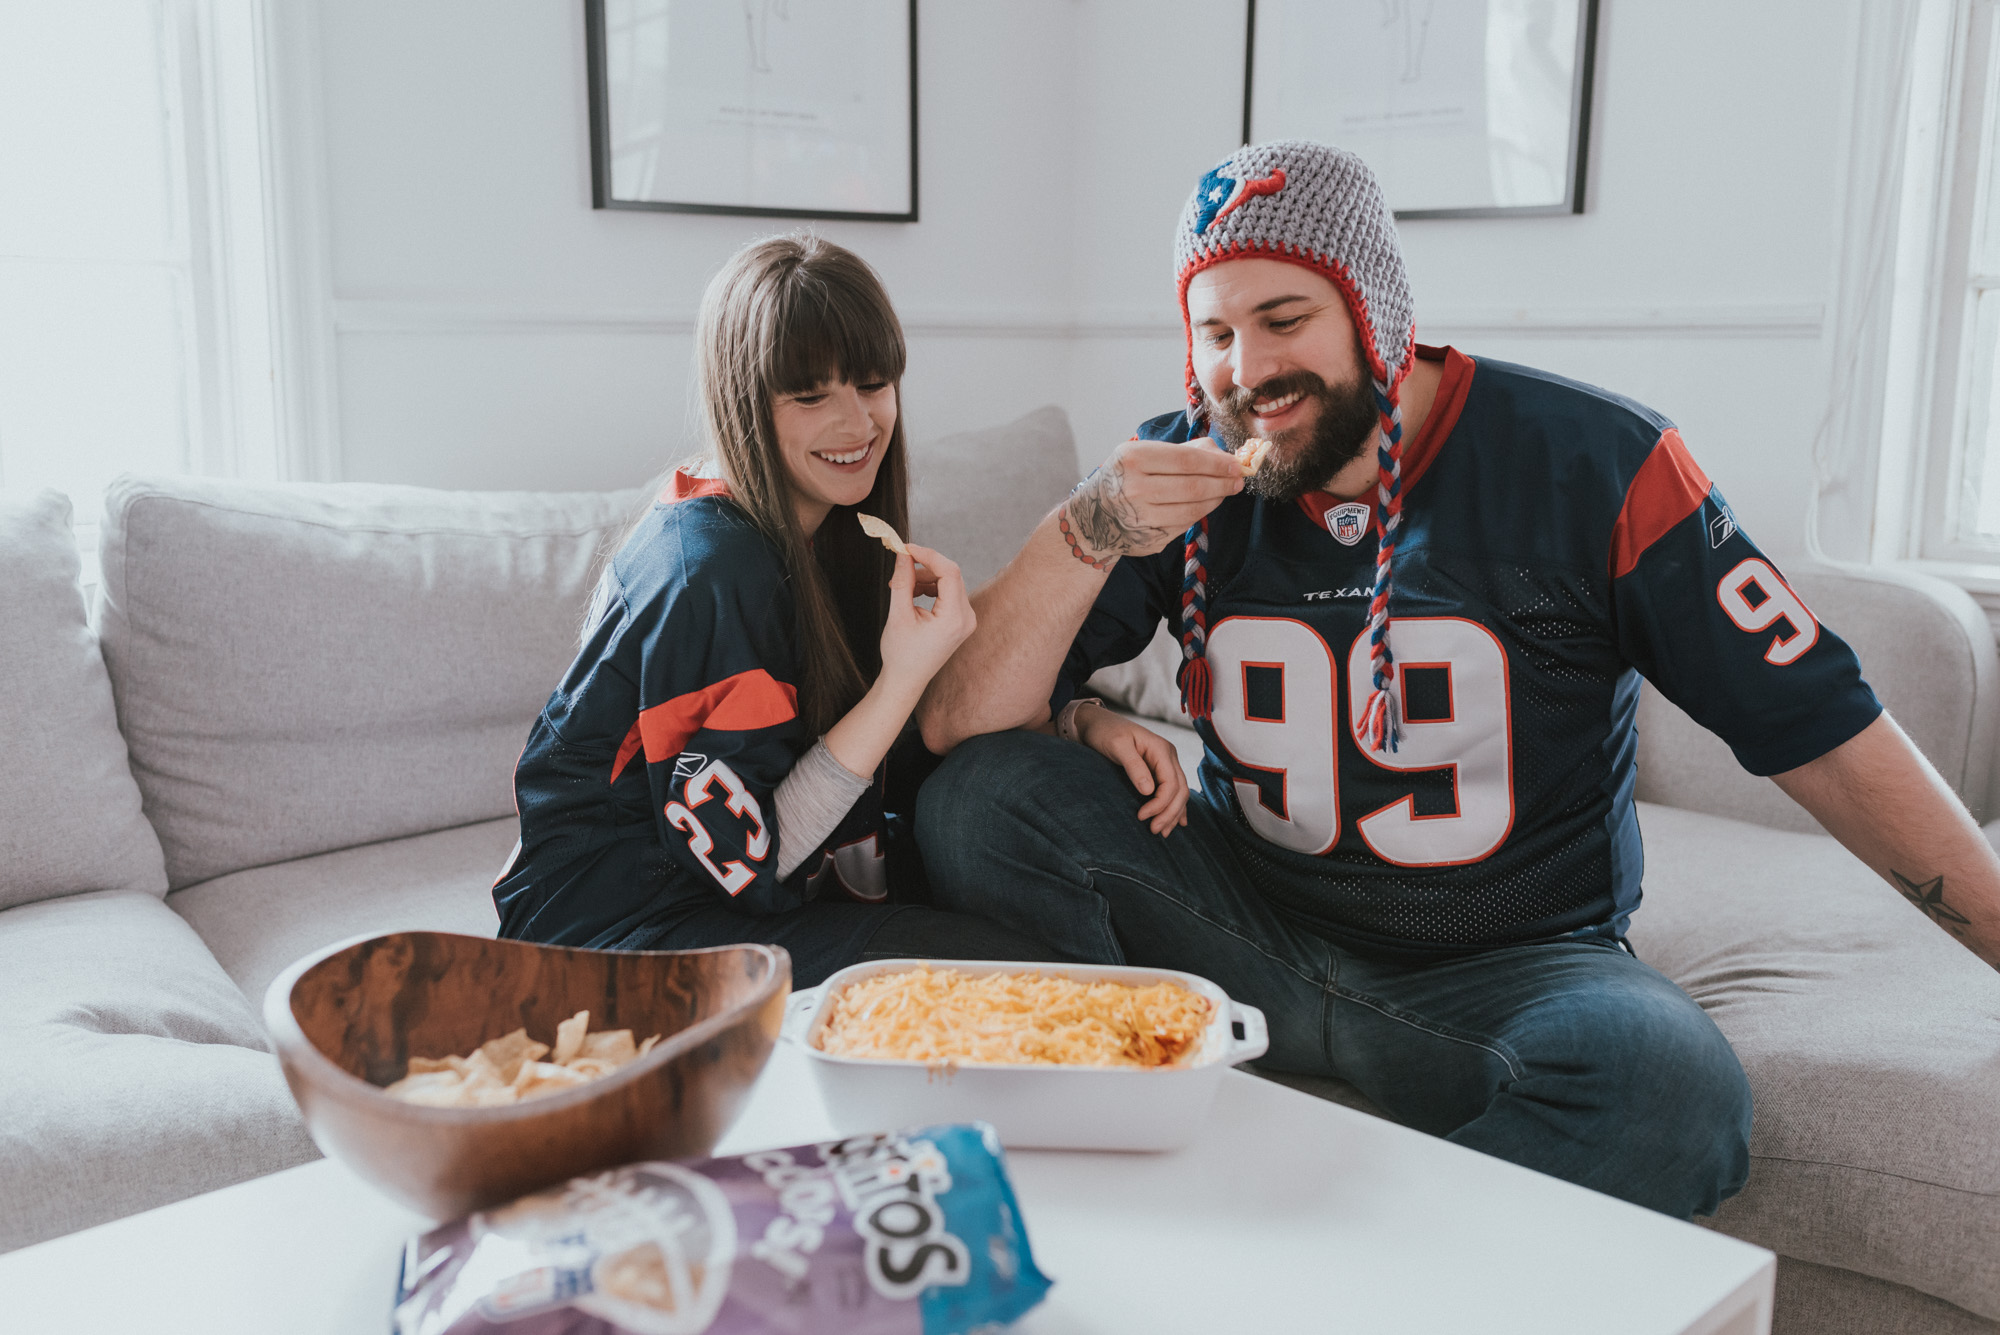 3 Recipes for Your Super Bowl Party With Tostitos